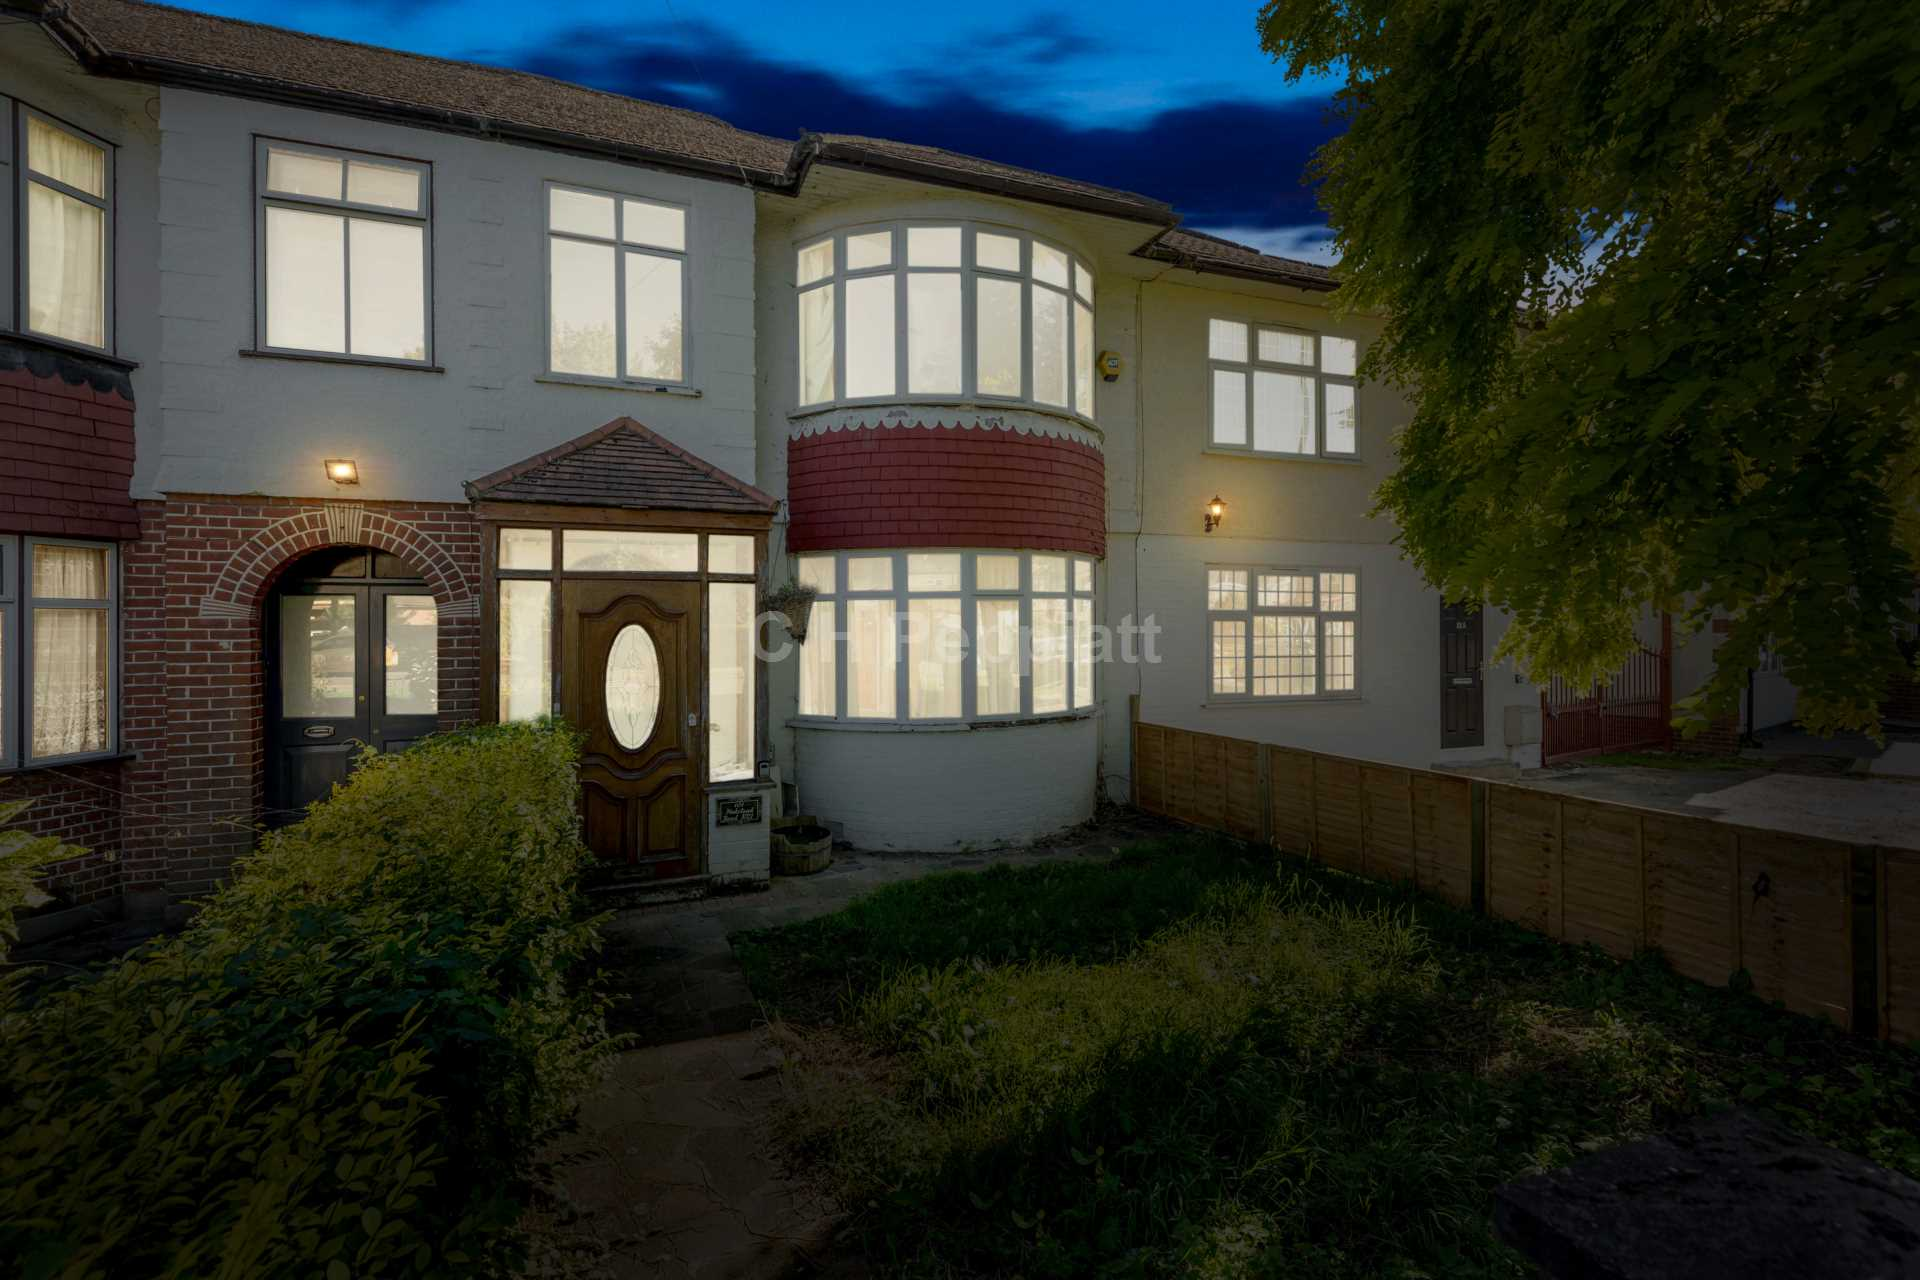 Halstead Road, Winchmore Hill, N21, Image 1